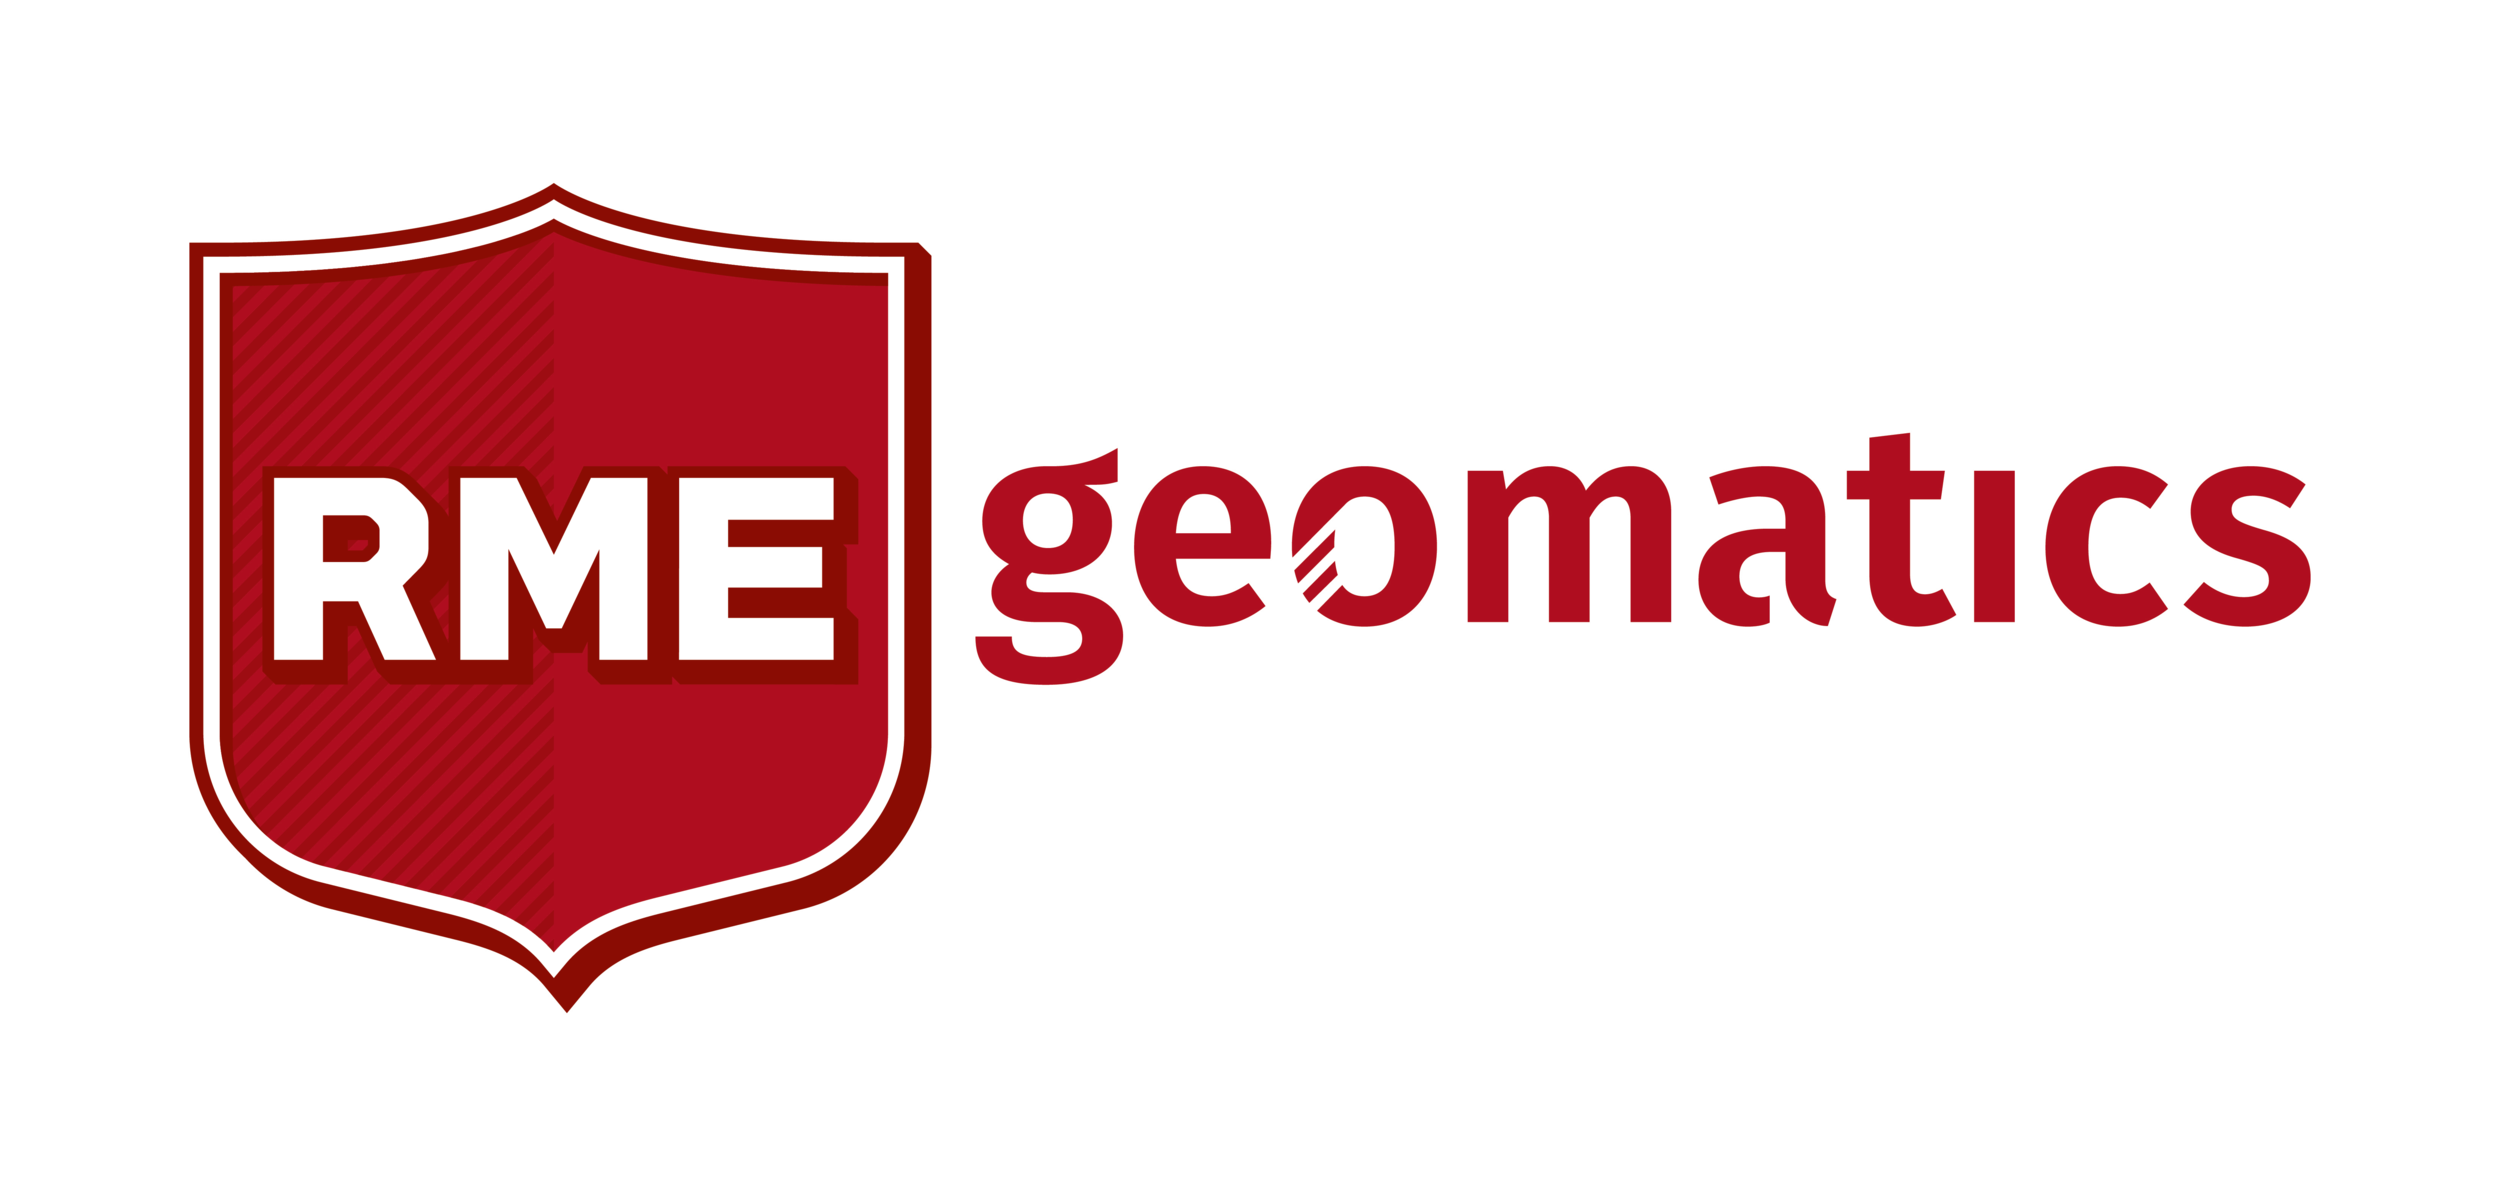 RME geomatics - RED on transparent.png